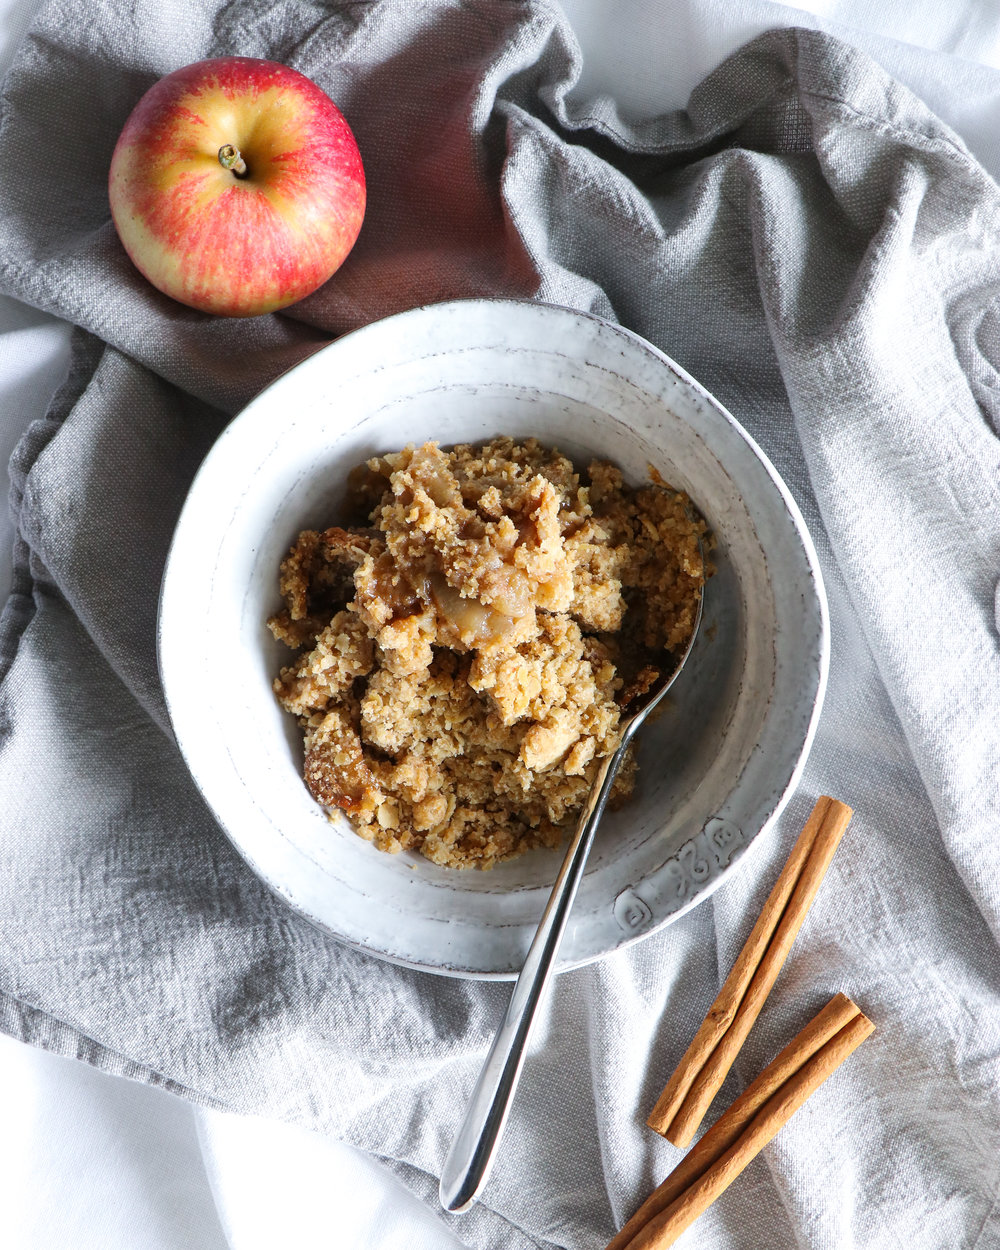 dairy and egg free vegan apple crumble recipe